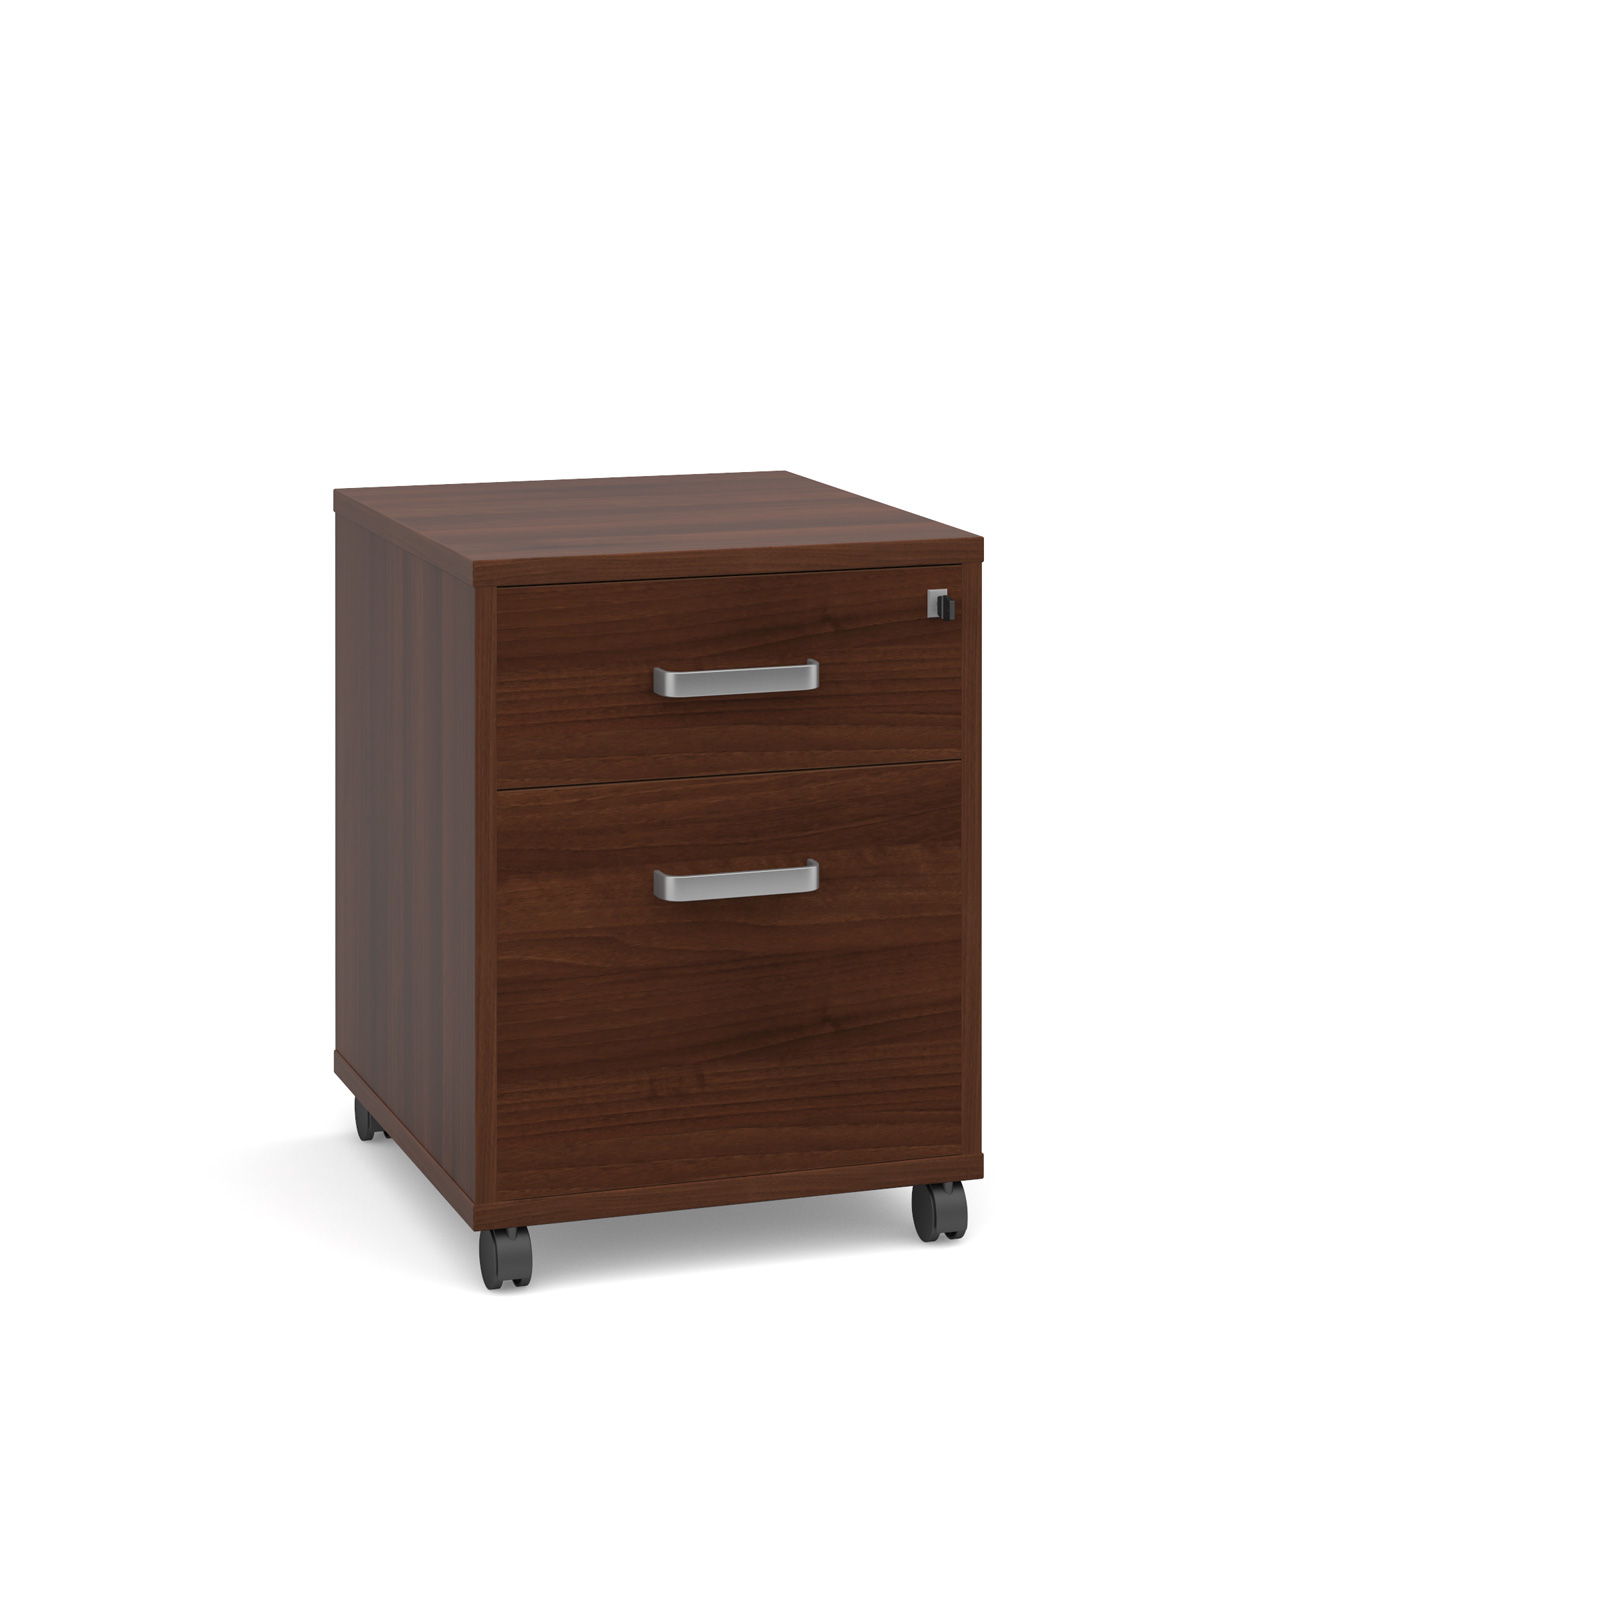 Magnum 2 drawer mobile pedestal - american walnut